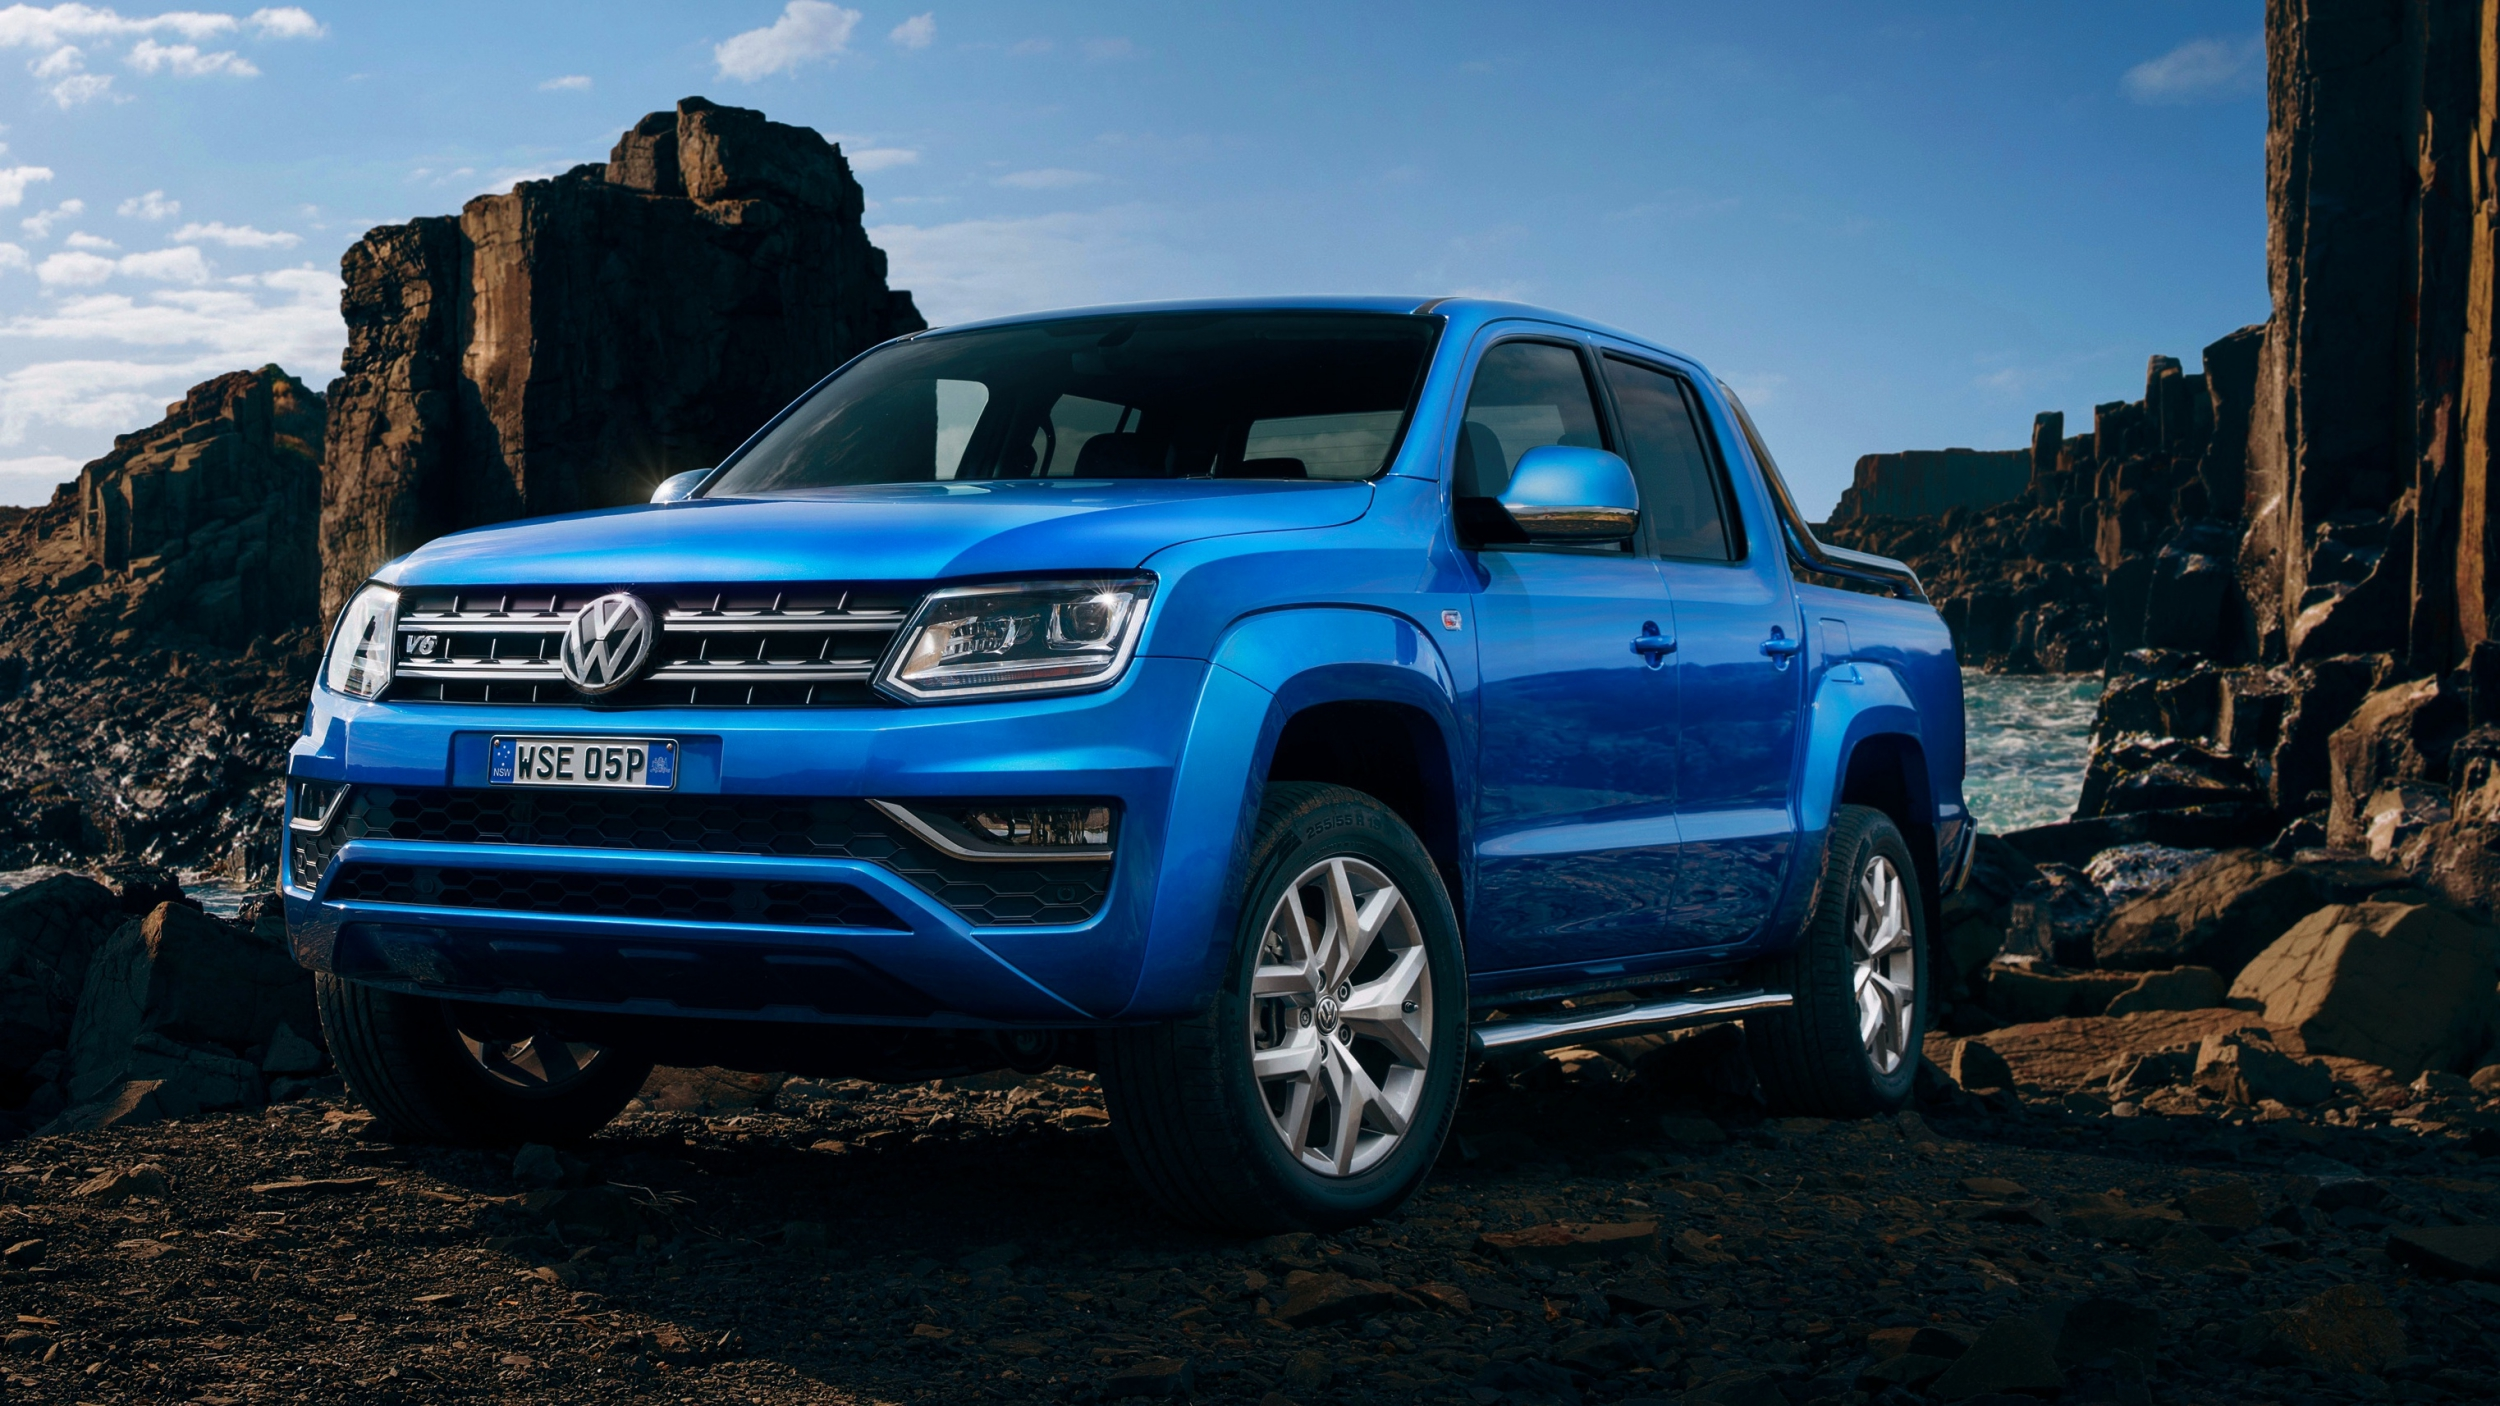 News - 2018 Volkswagen Amarok V6 Now 3.5-Tonne Tow Rated